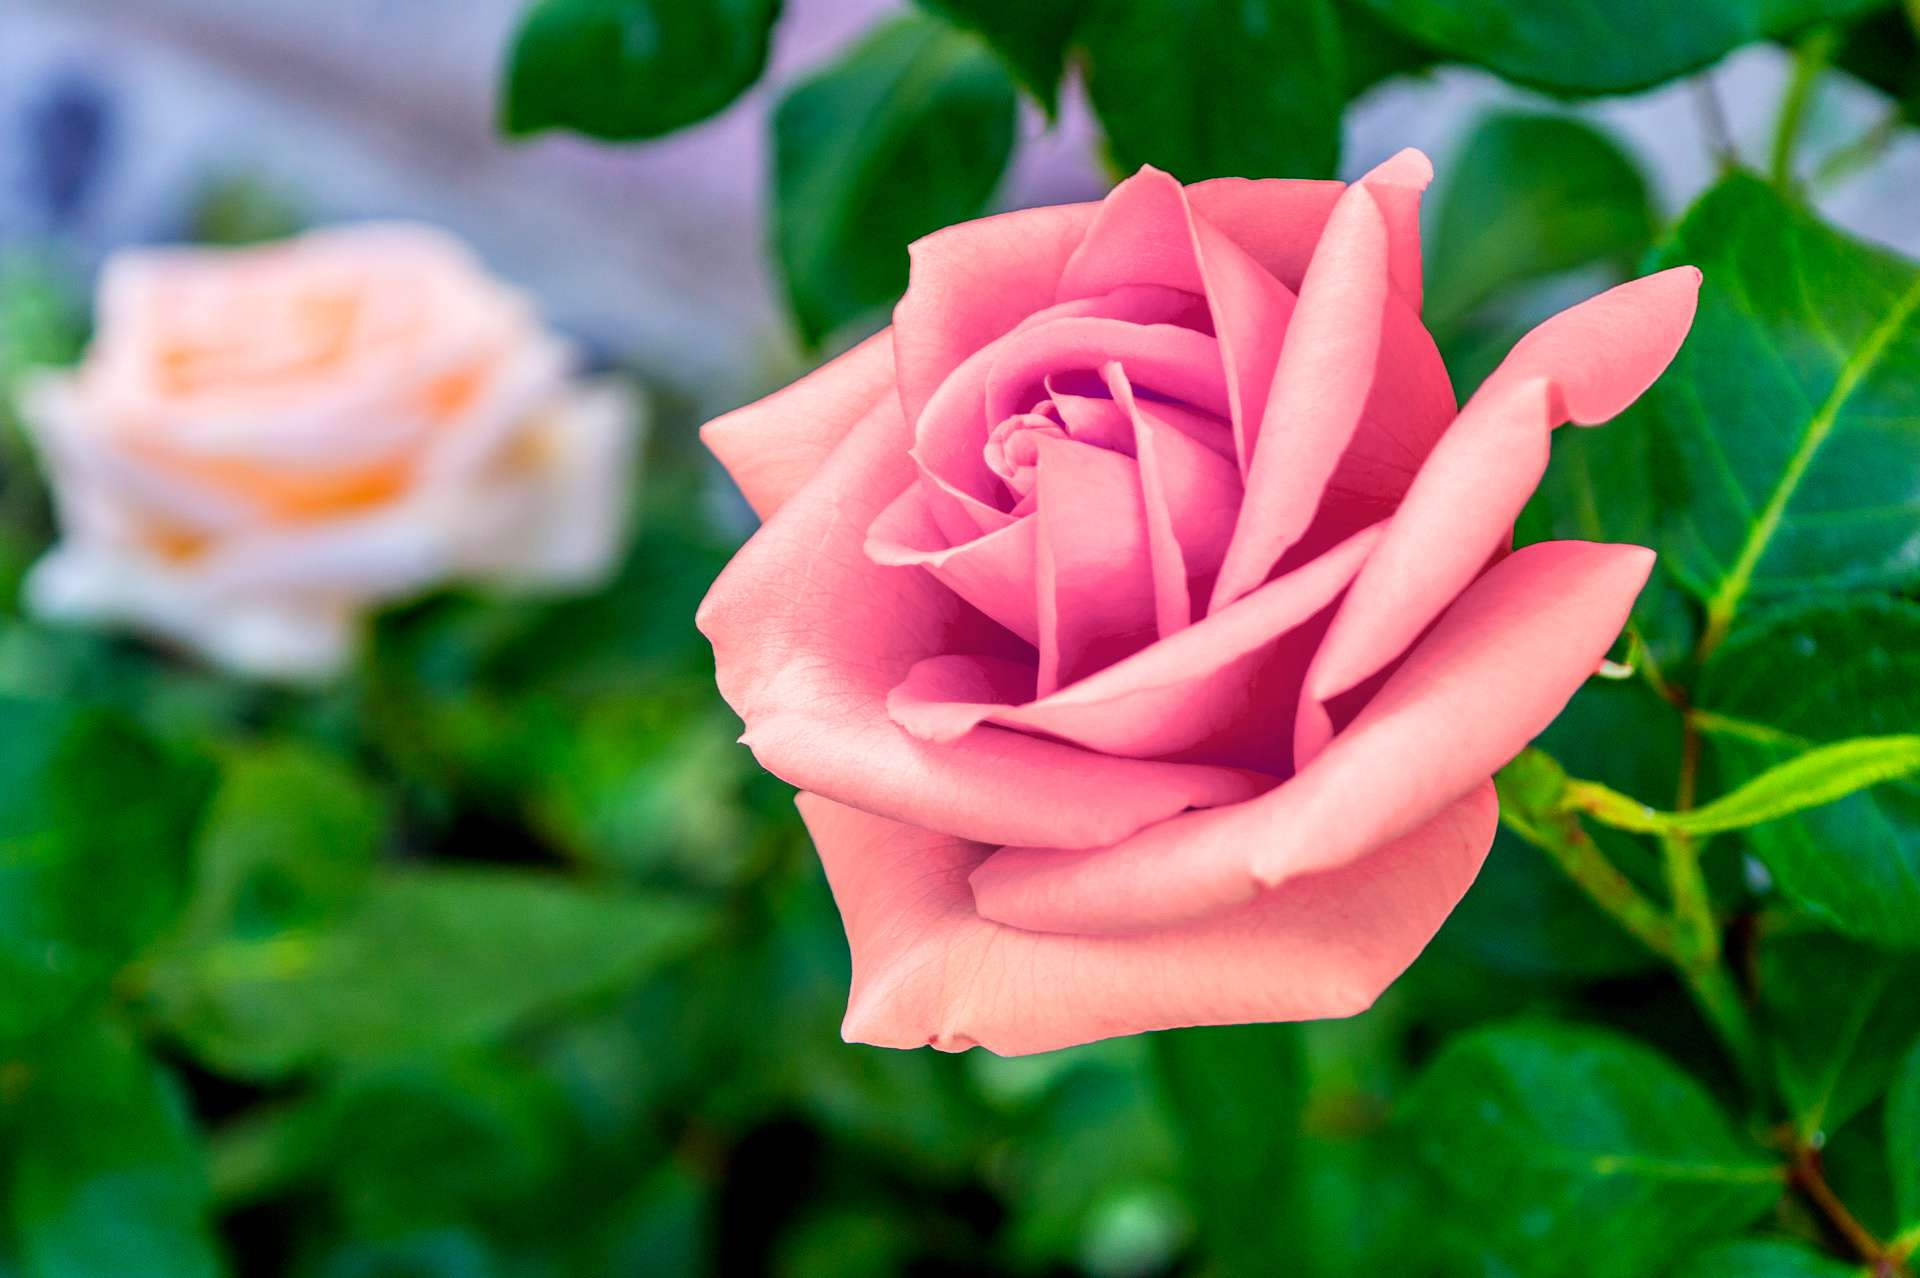 hd-royalty-free-photos-rose-hd-games-1080p-download-hd-for-pc-and-d-wallpaper-wp34012102